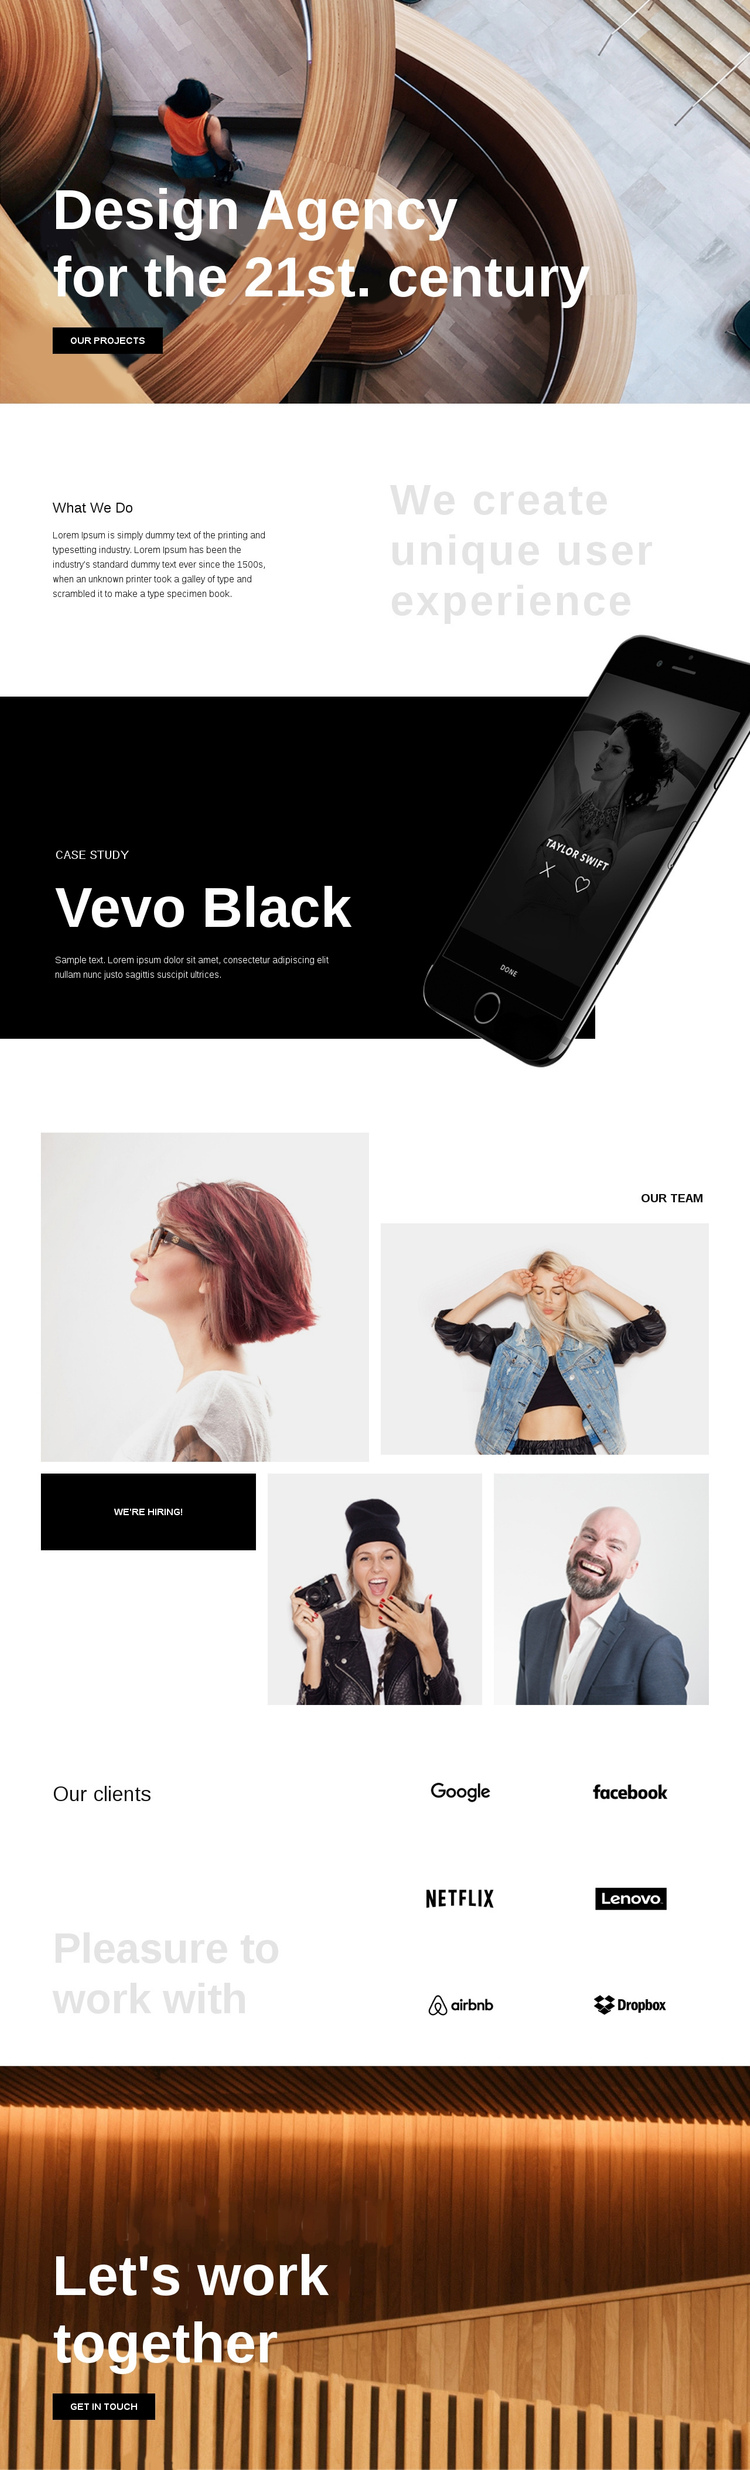 Design Agency One Page Template